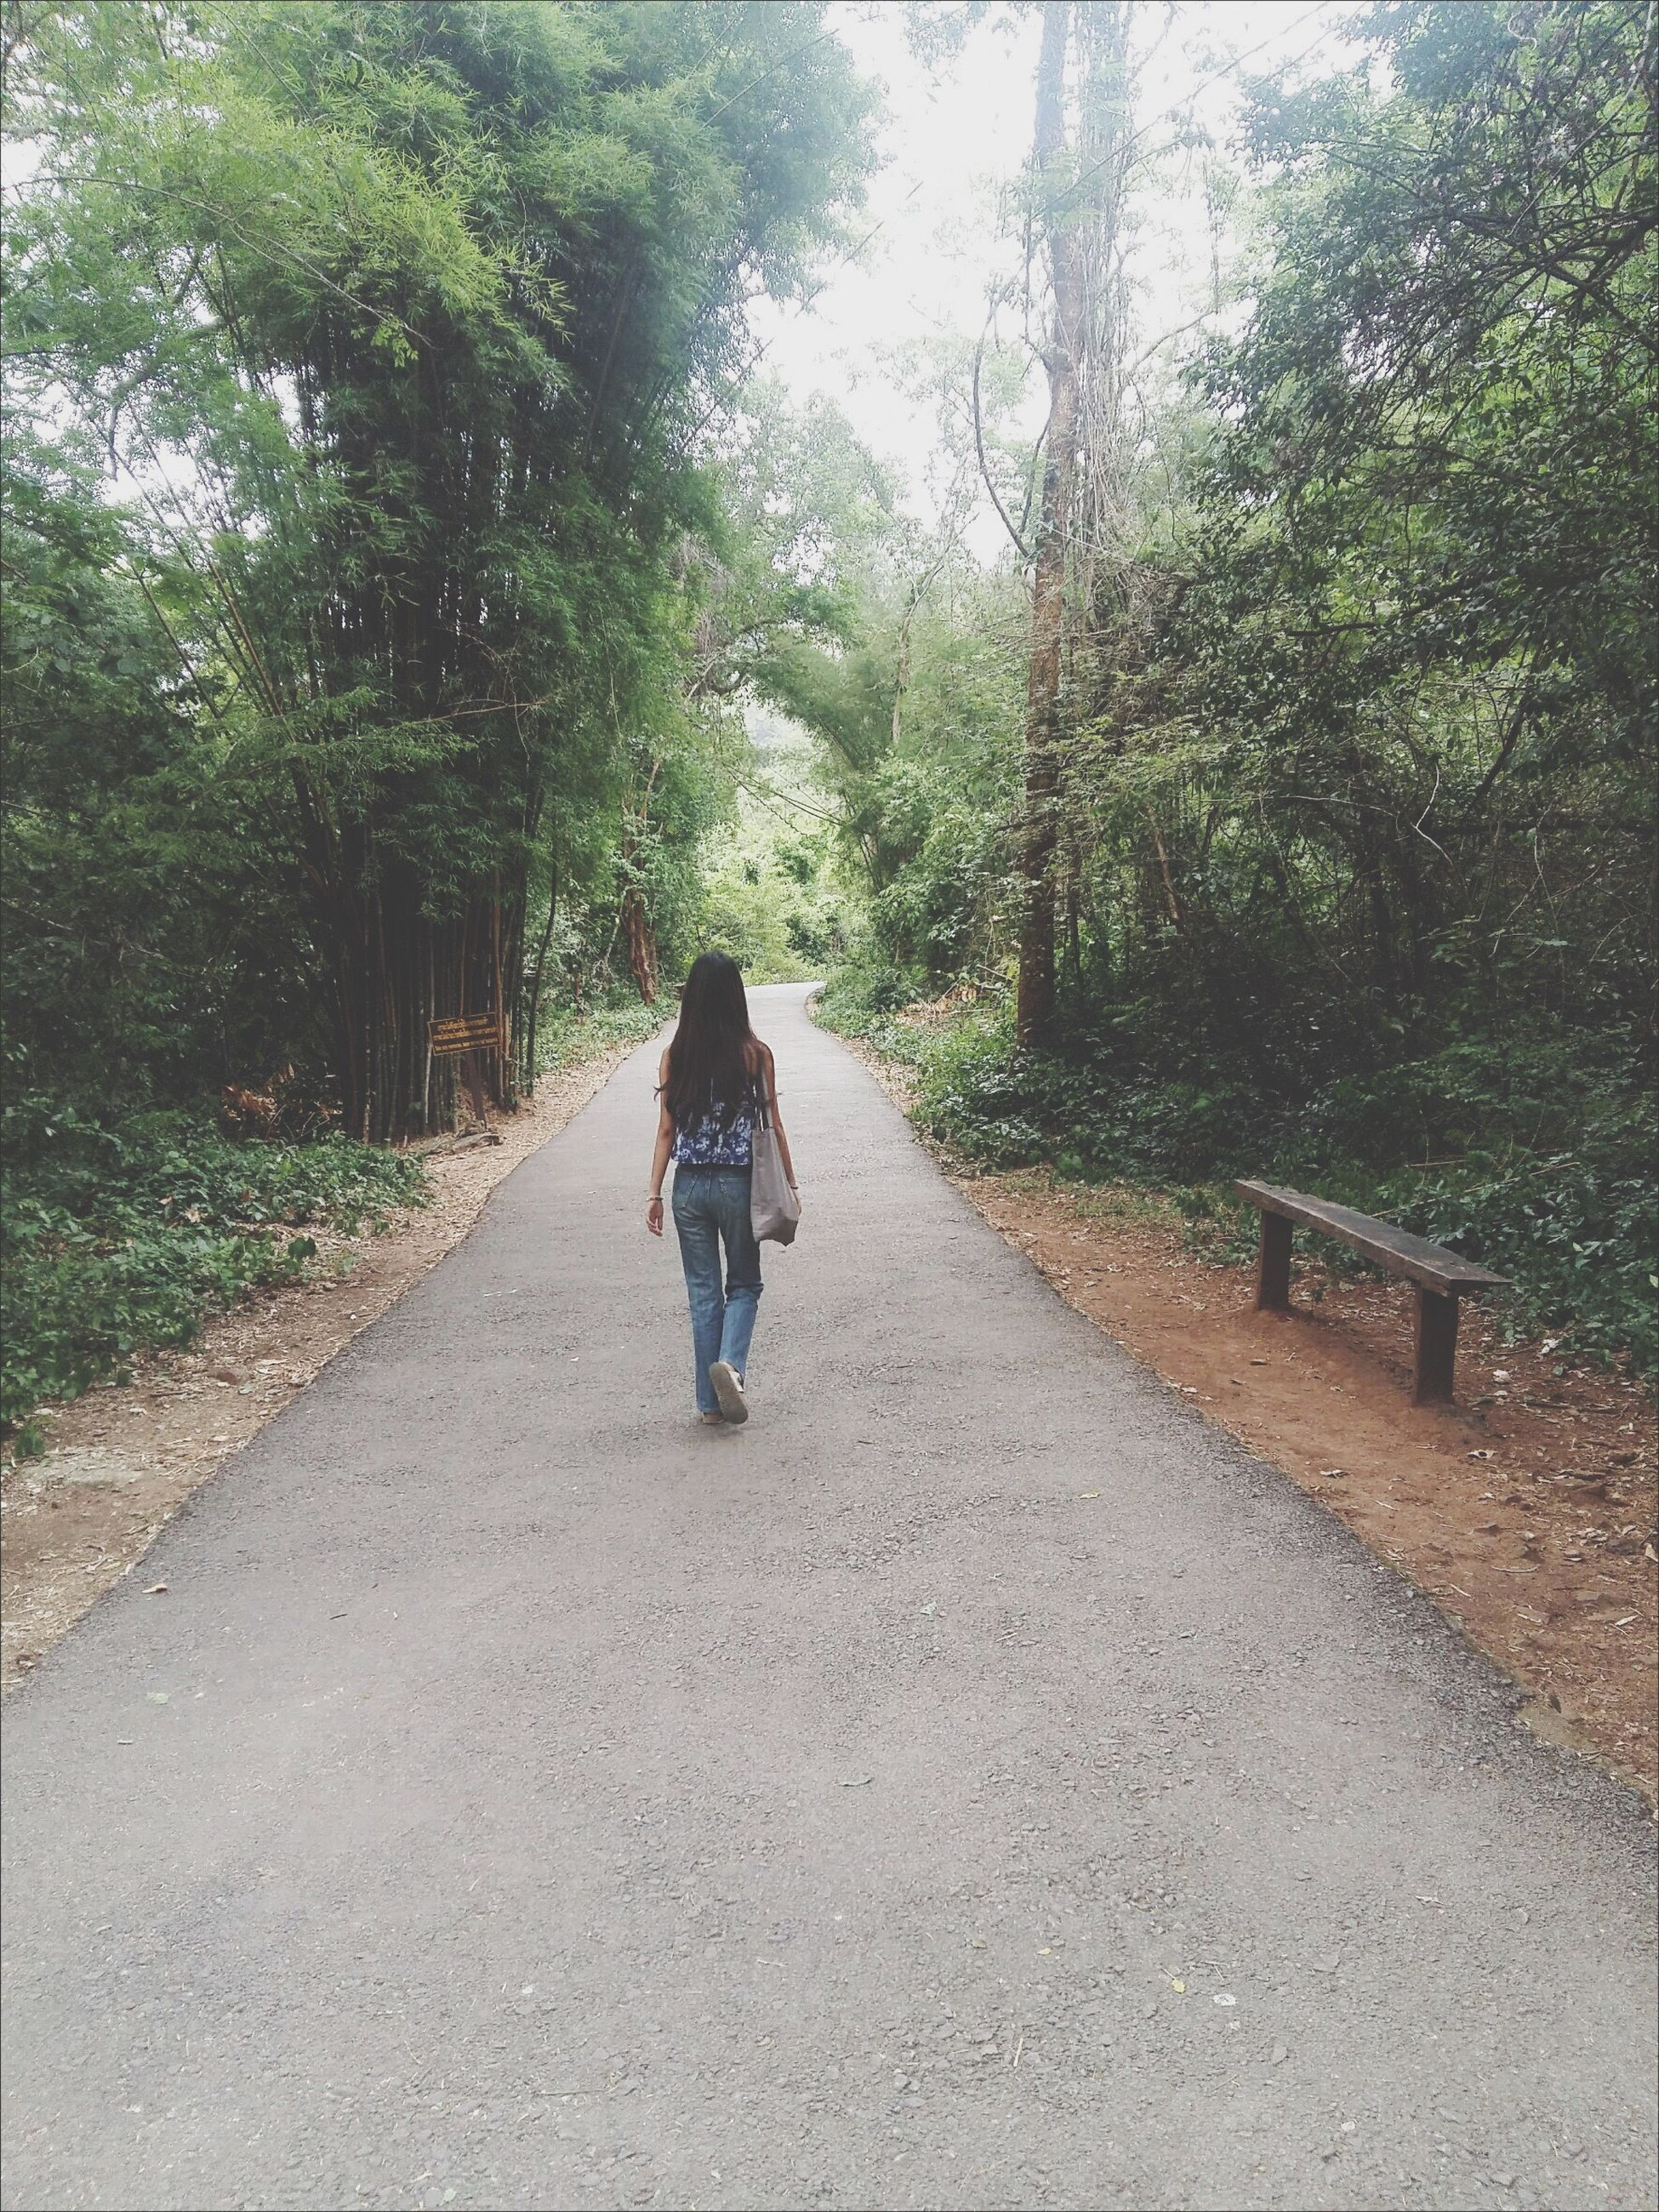 tree, the way forward, full length, lifestyles, road, leisure activity, diminishing perspective, vanishing point, casual clothing, day, growth, outdoors, nature, plant, country road, green color, tranquility, tranquil scene